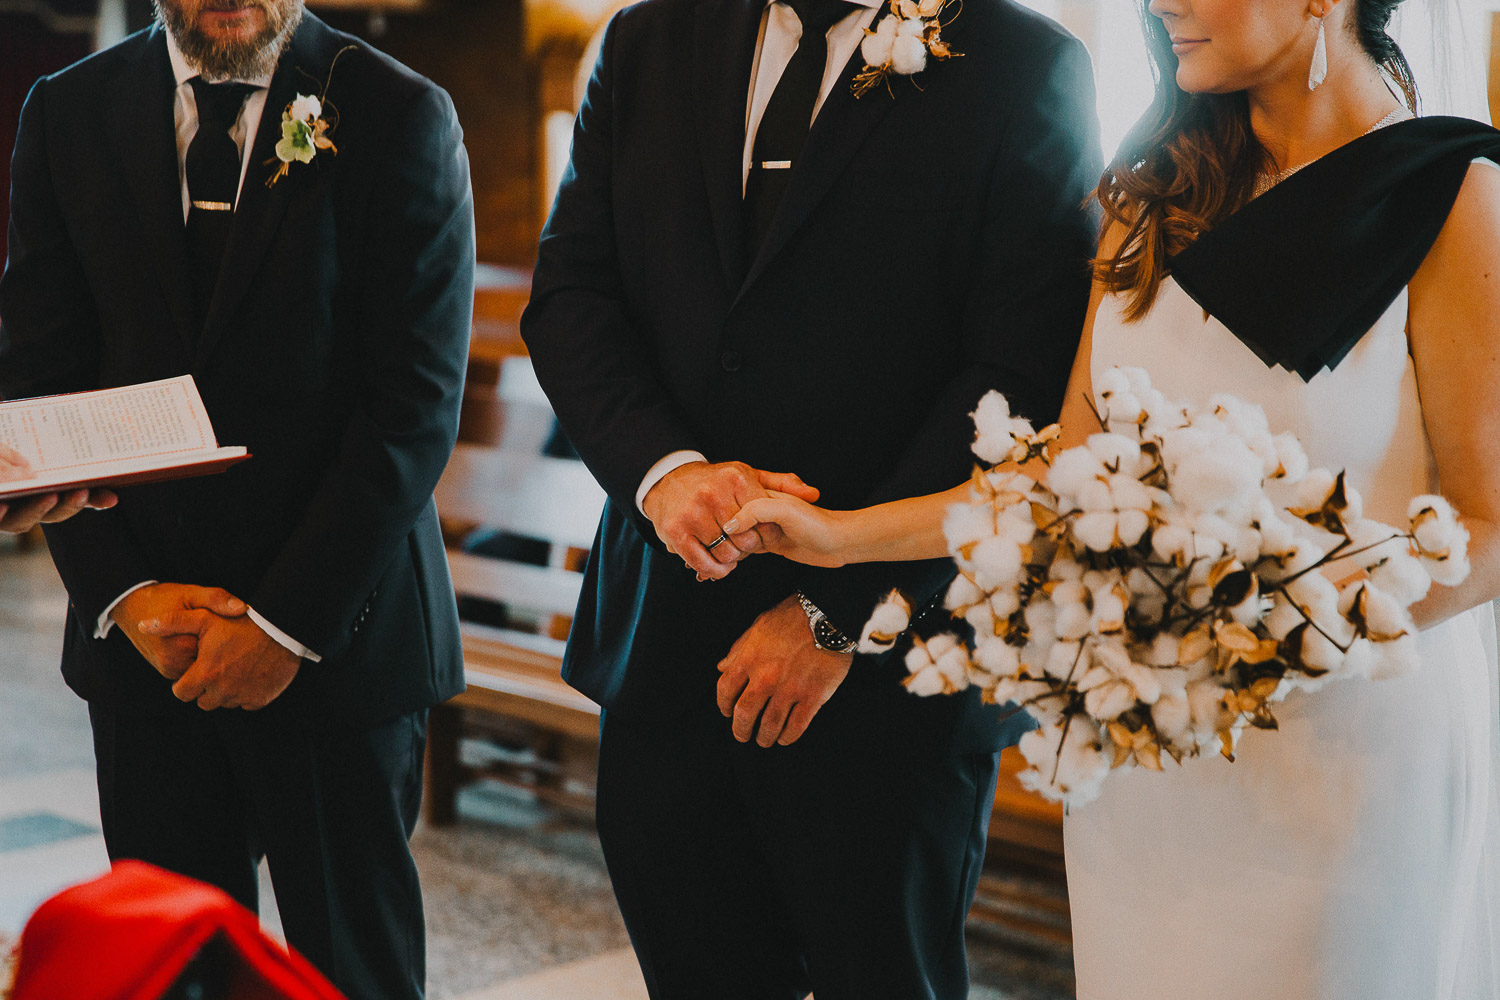 The birde and groom holding hands during the wedding ceremony